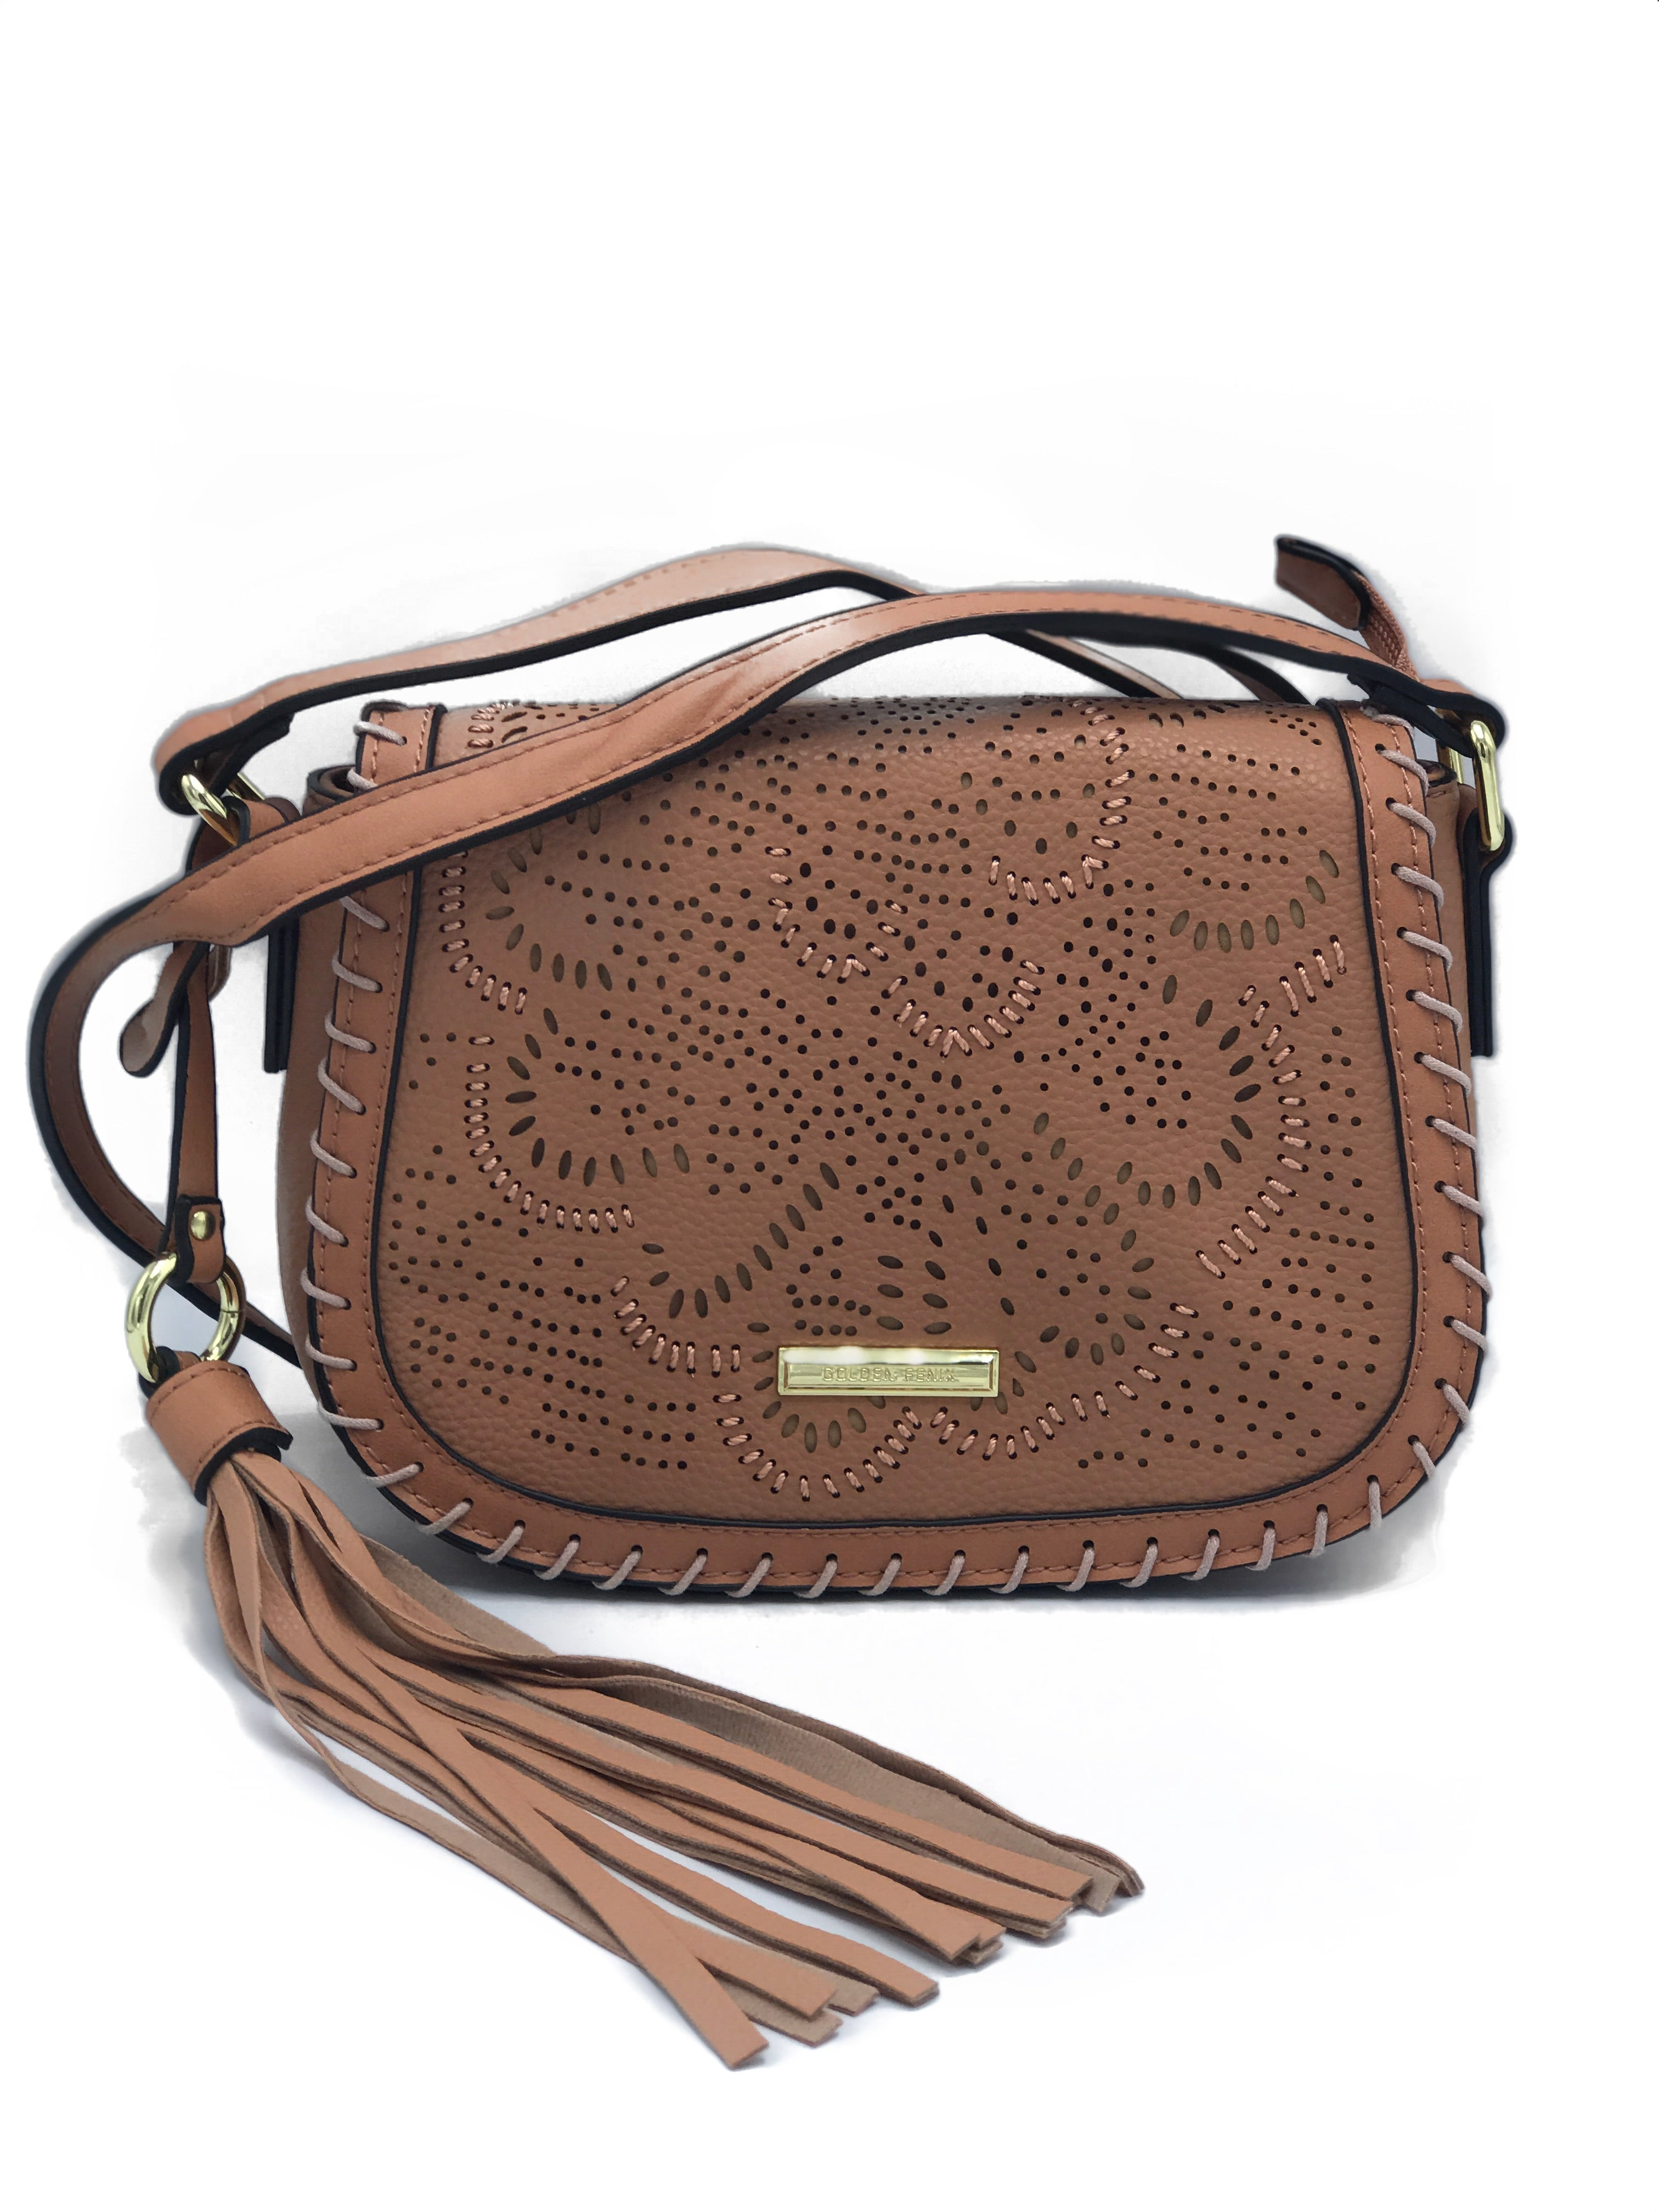 Blush Bohemian Leather Crossbody Bag | Brown Women's Handbags